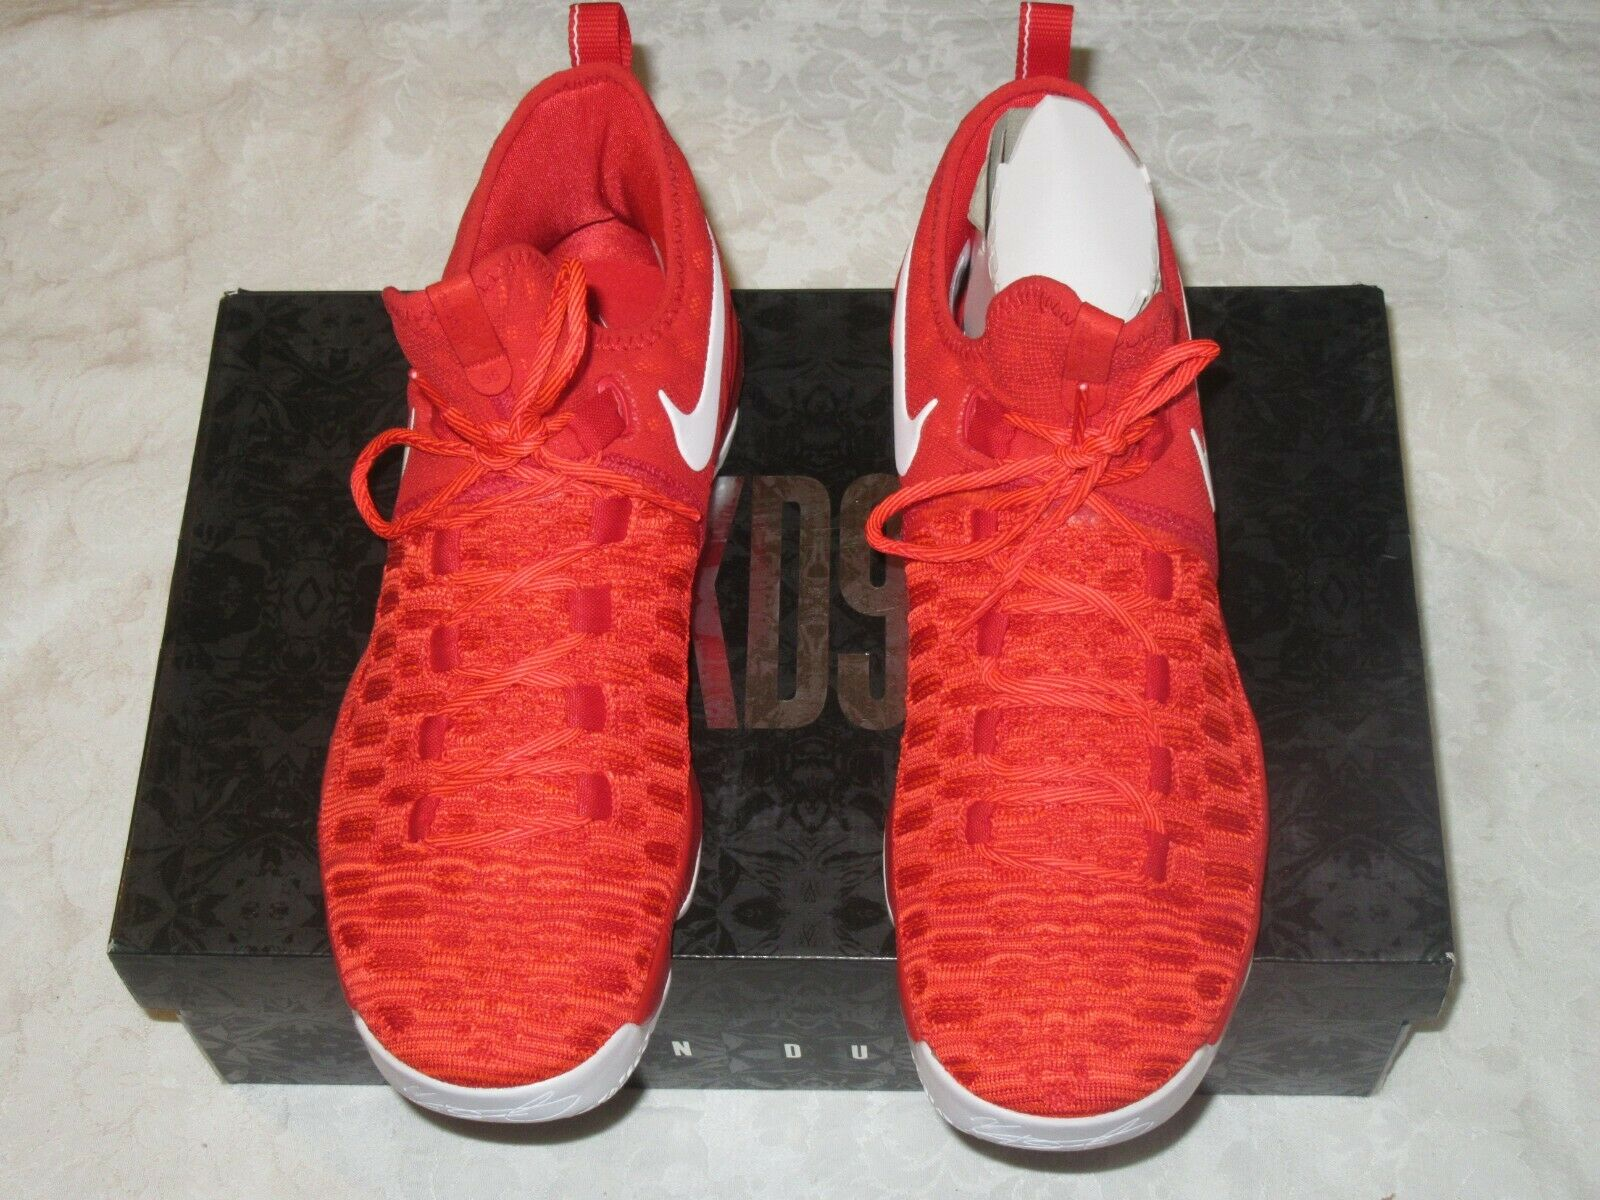 d69fa9eac29d Nike Zoom KD 9 9 9 University Red White 843392 611 Men s US Size 11 Sneakers